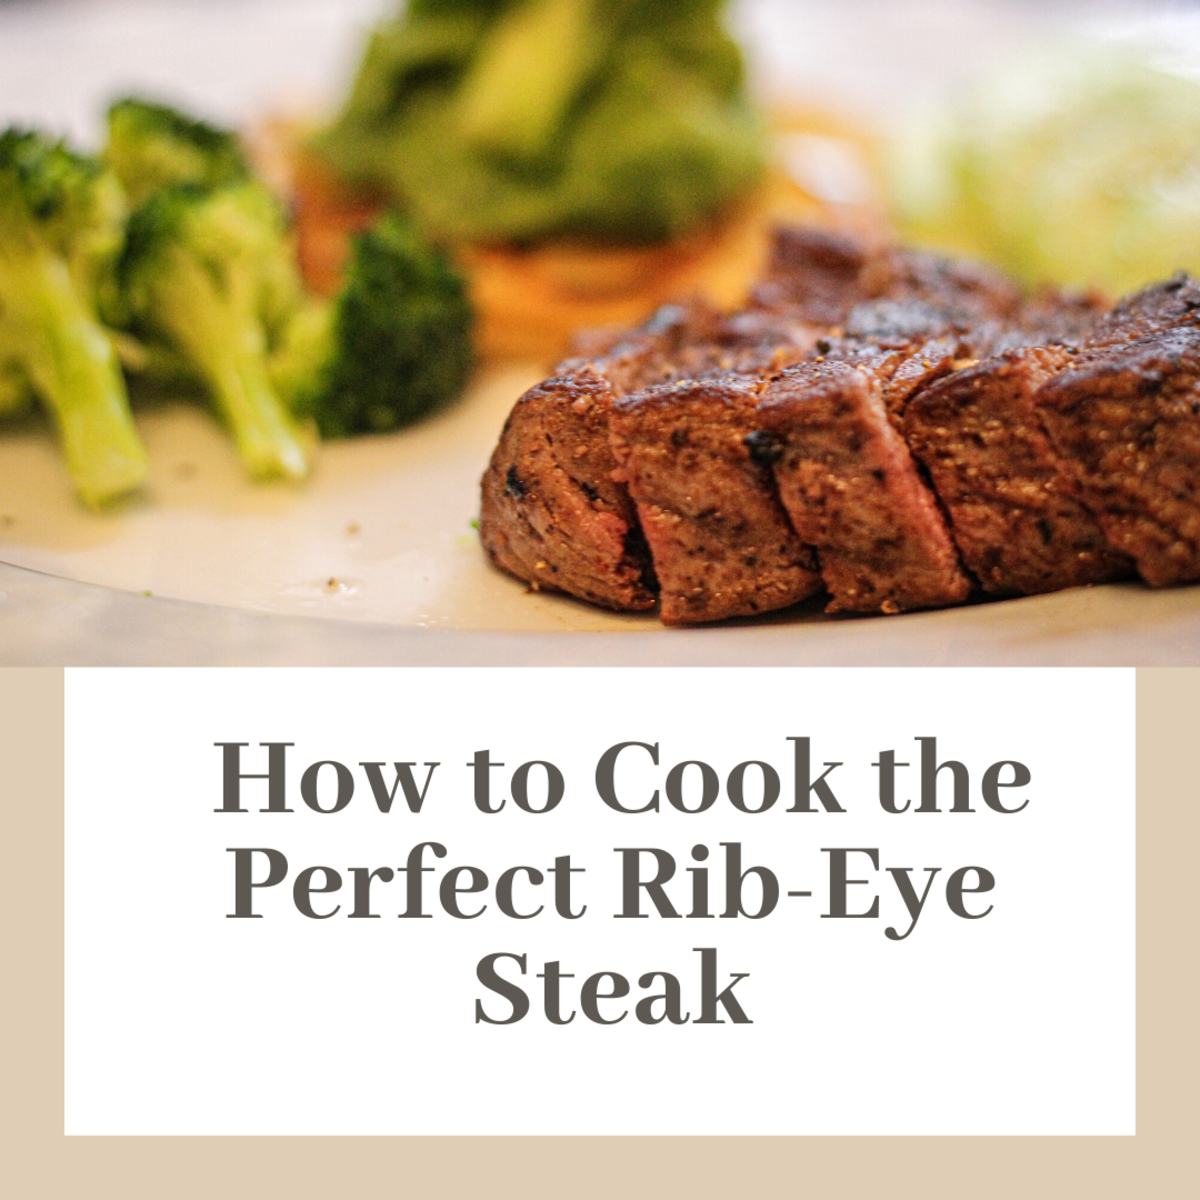 How to Cook the Perfect Rib-Eye Steak